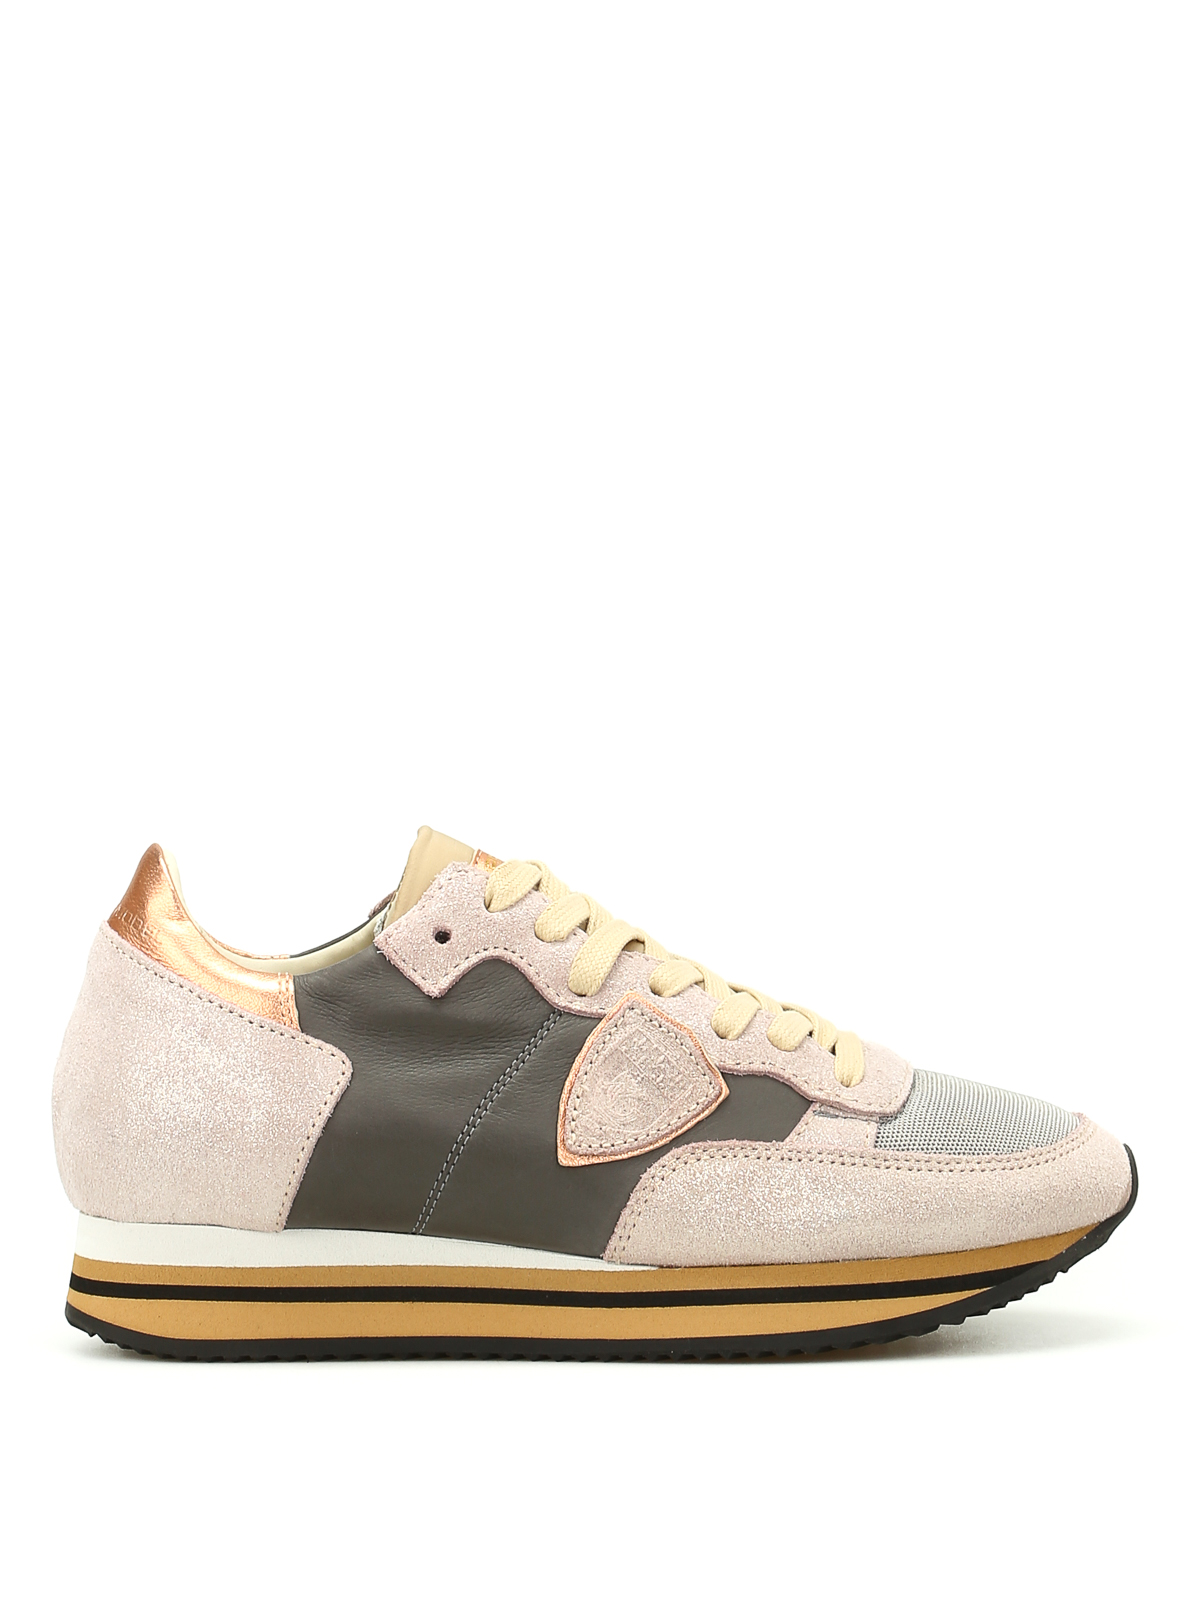 tropez pearly sneakers by philippe model trainers ikrix. Black Bedroom Furniture Sets. Home Design Ideas